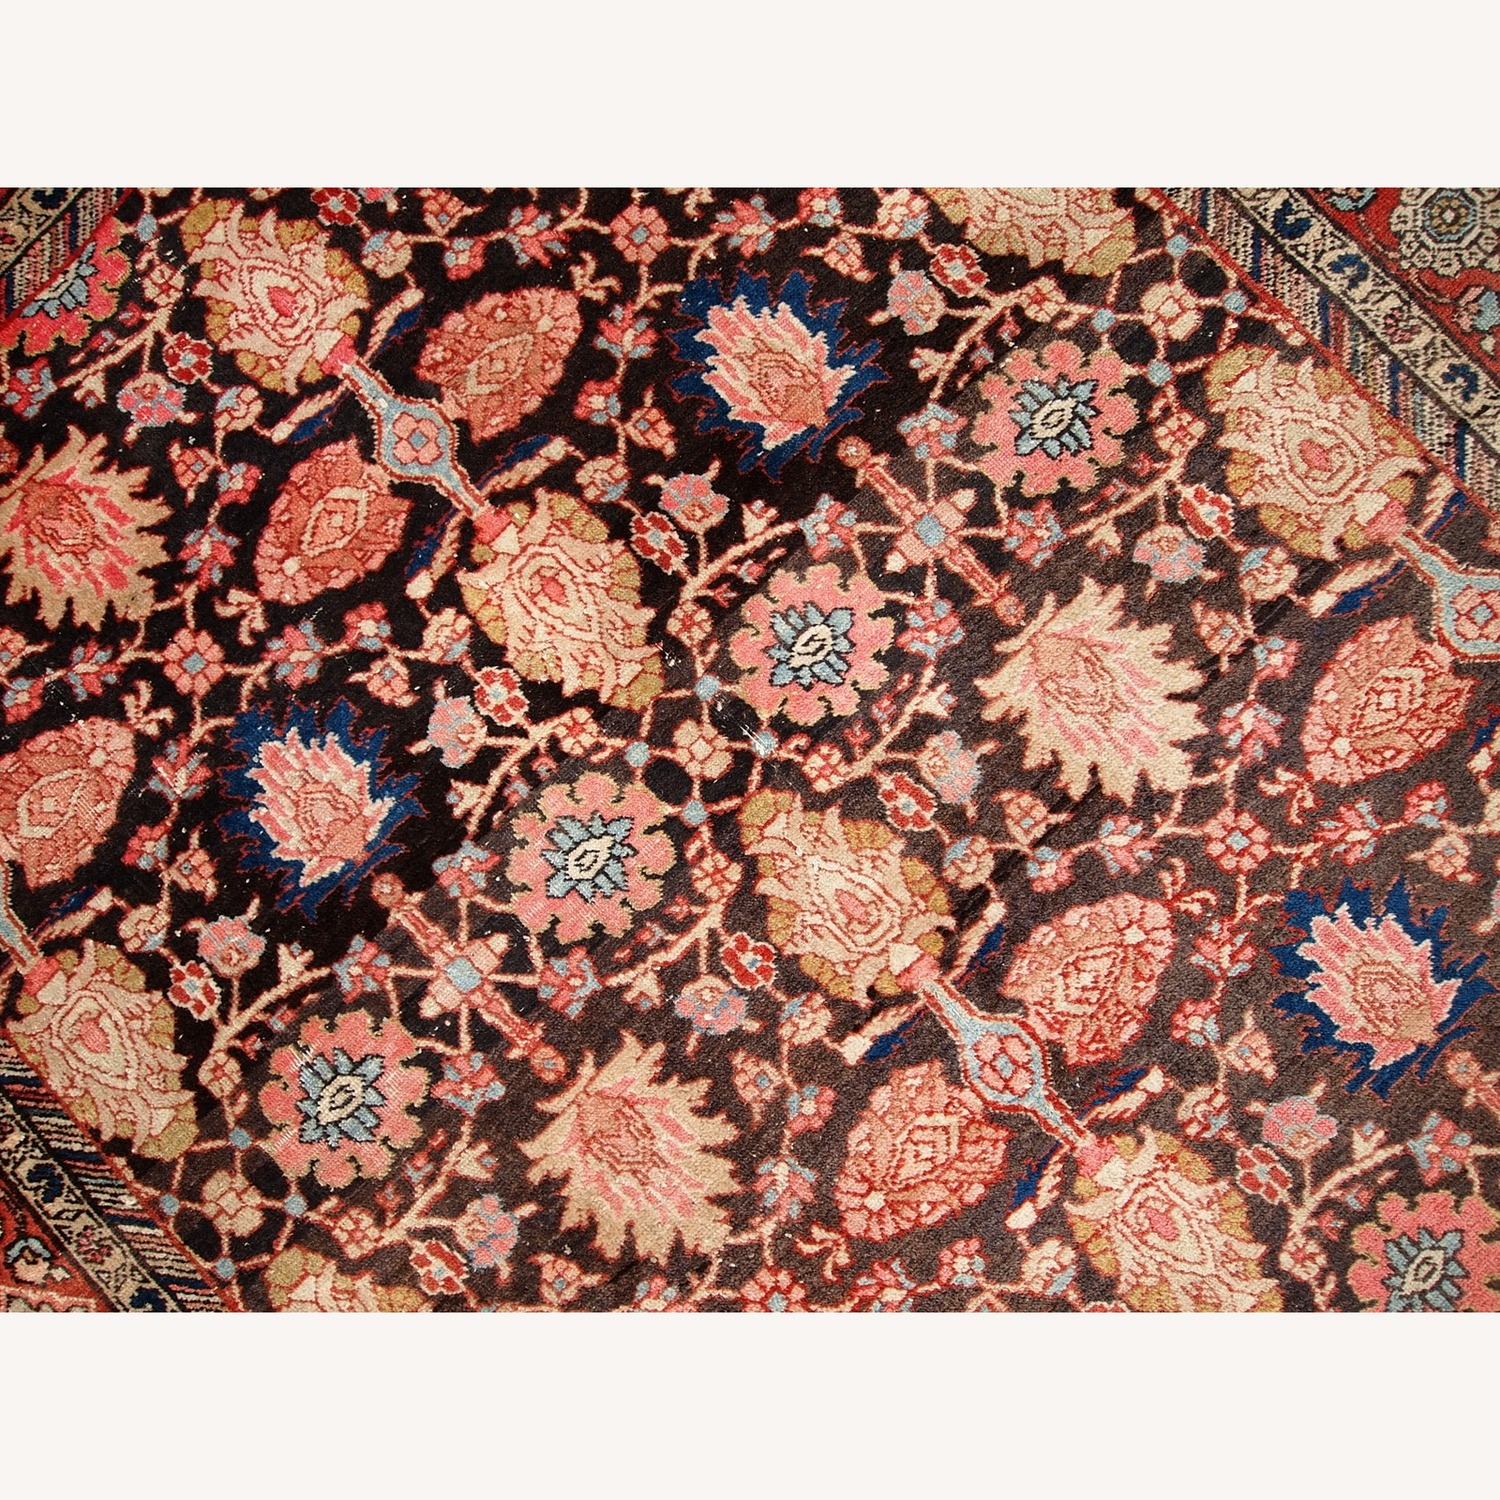 Handmade Antique Persian Bidjar Rug - image-15